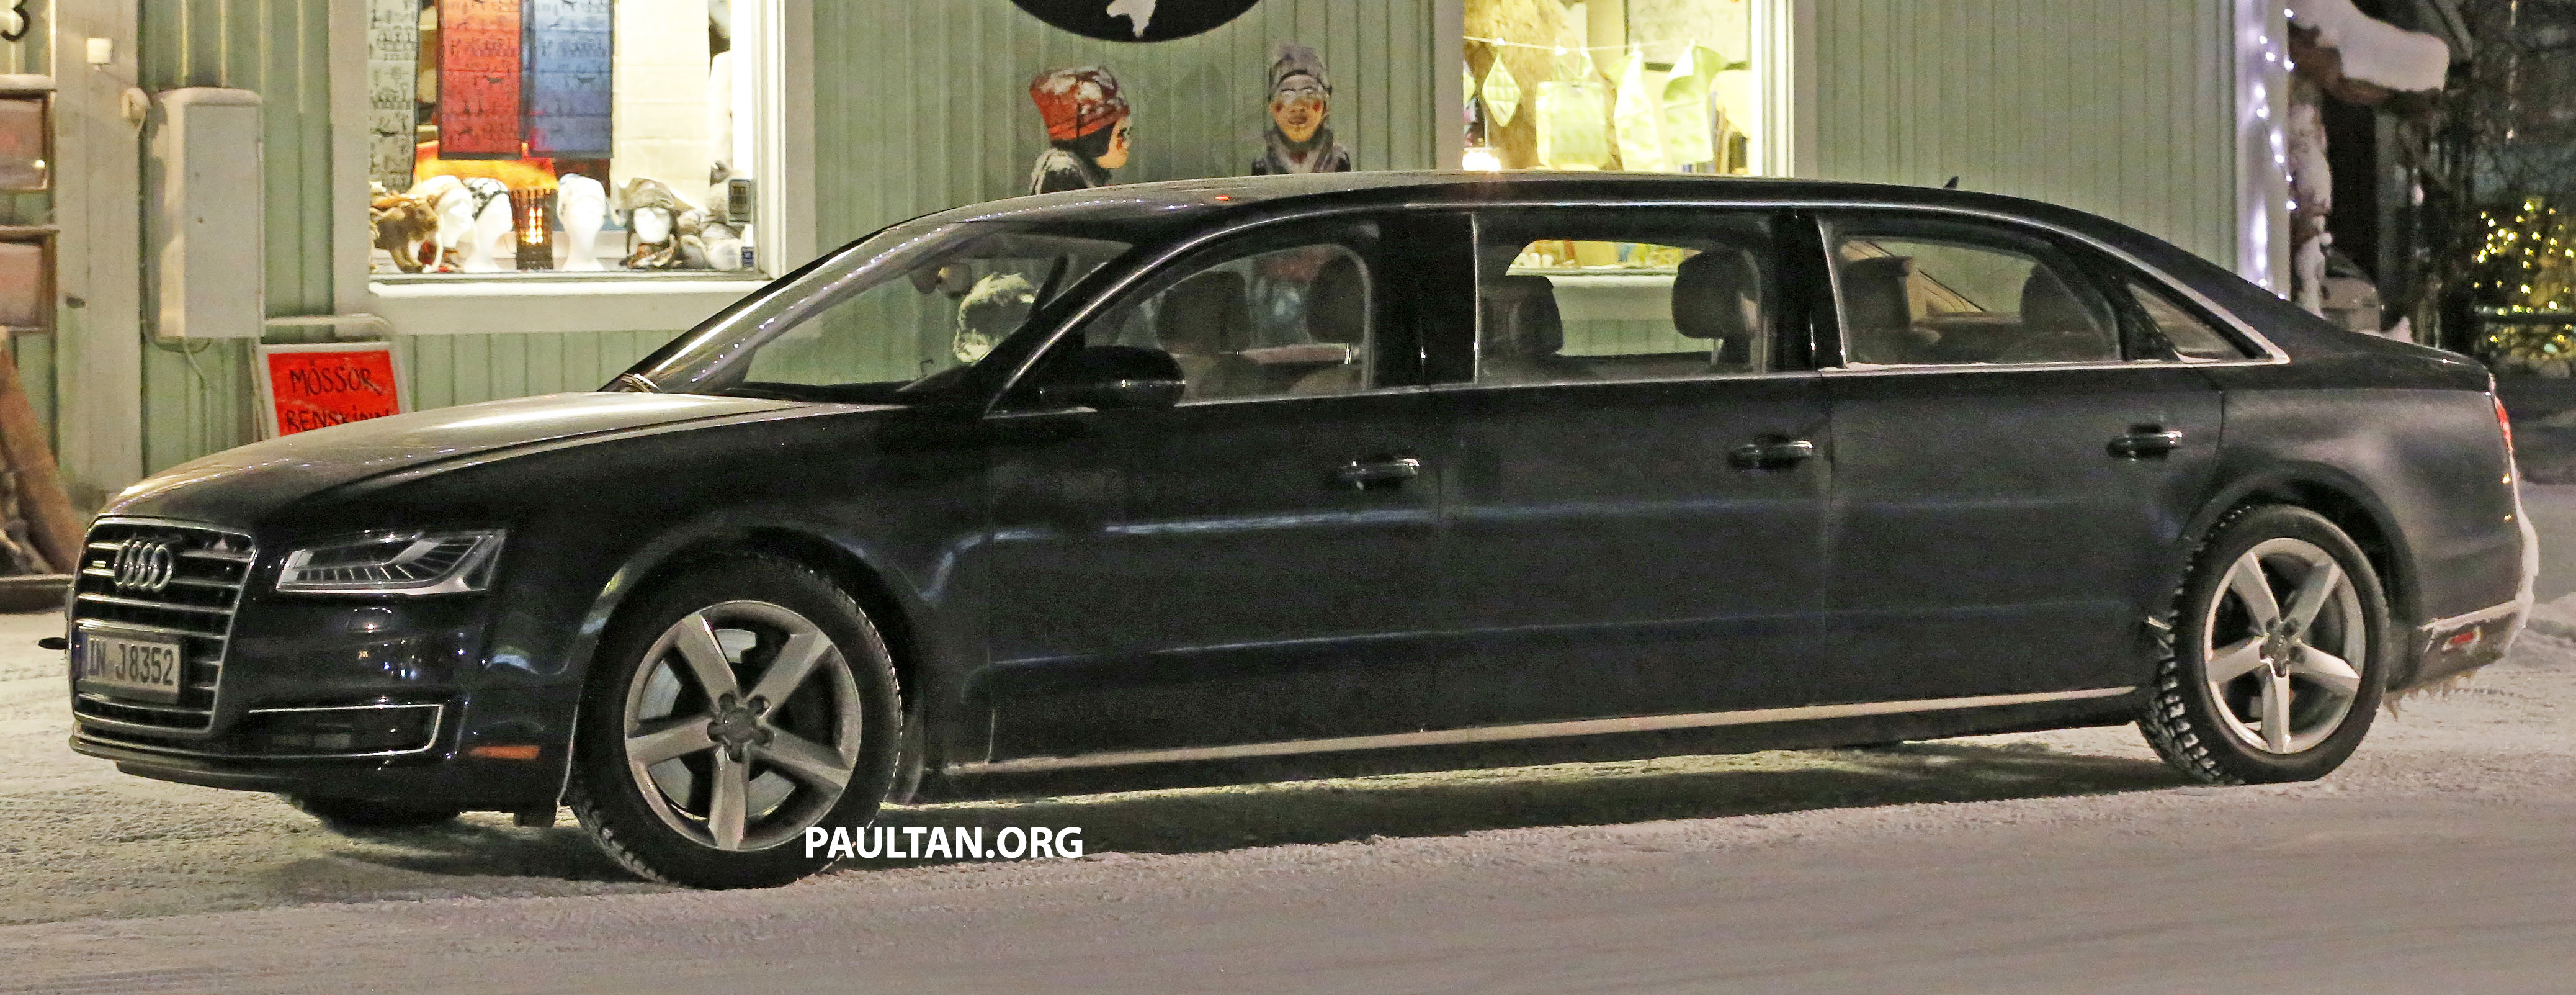 Audi A8 Stretched Limousine With Six Doors Sighted Image